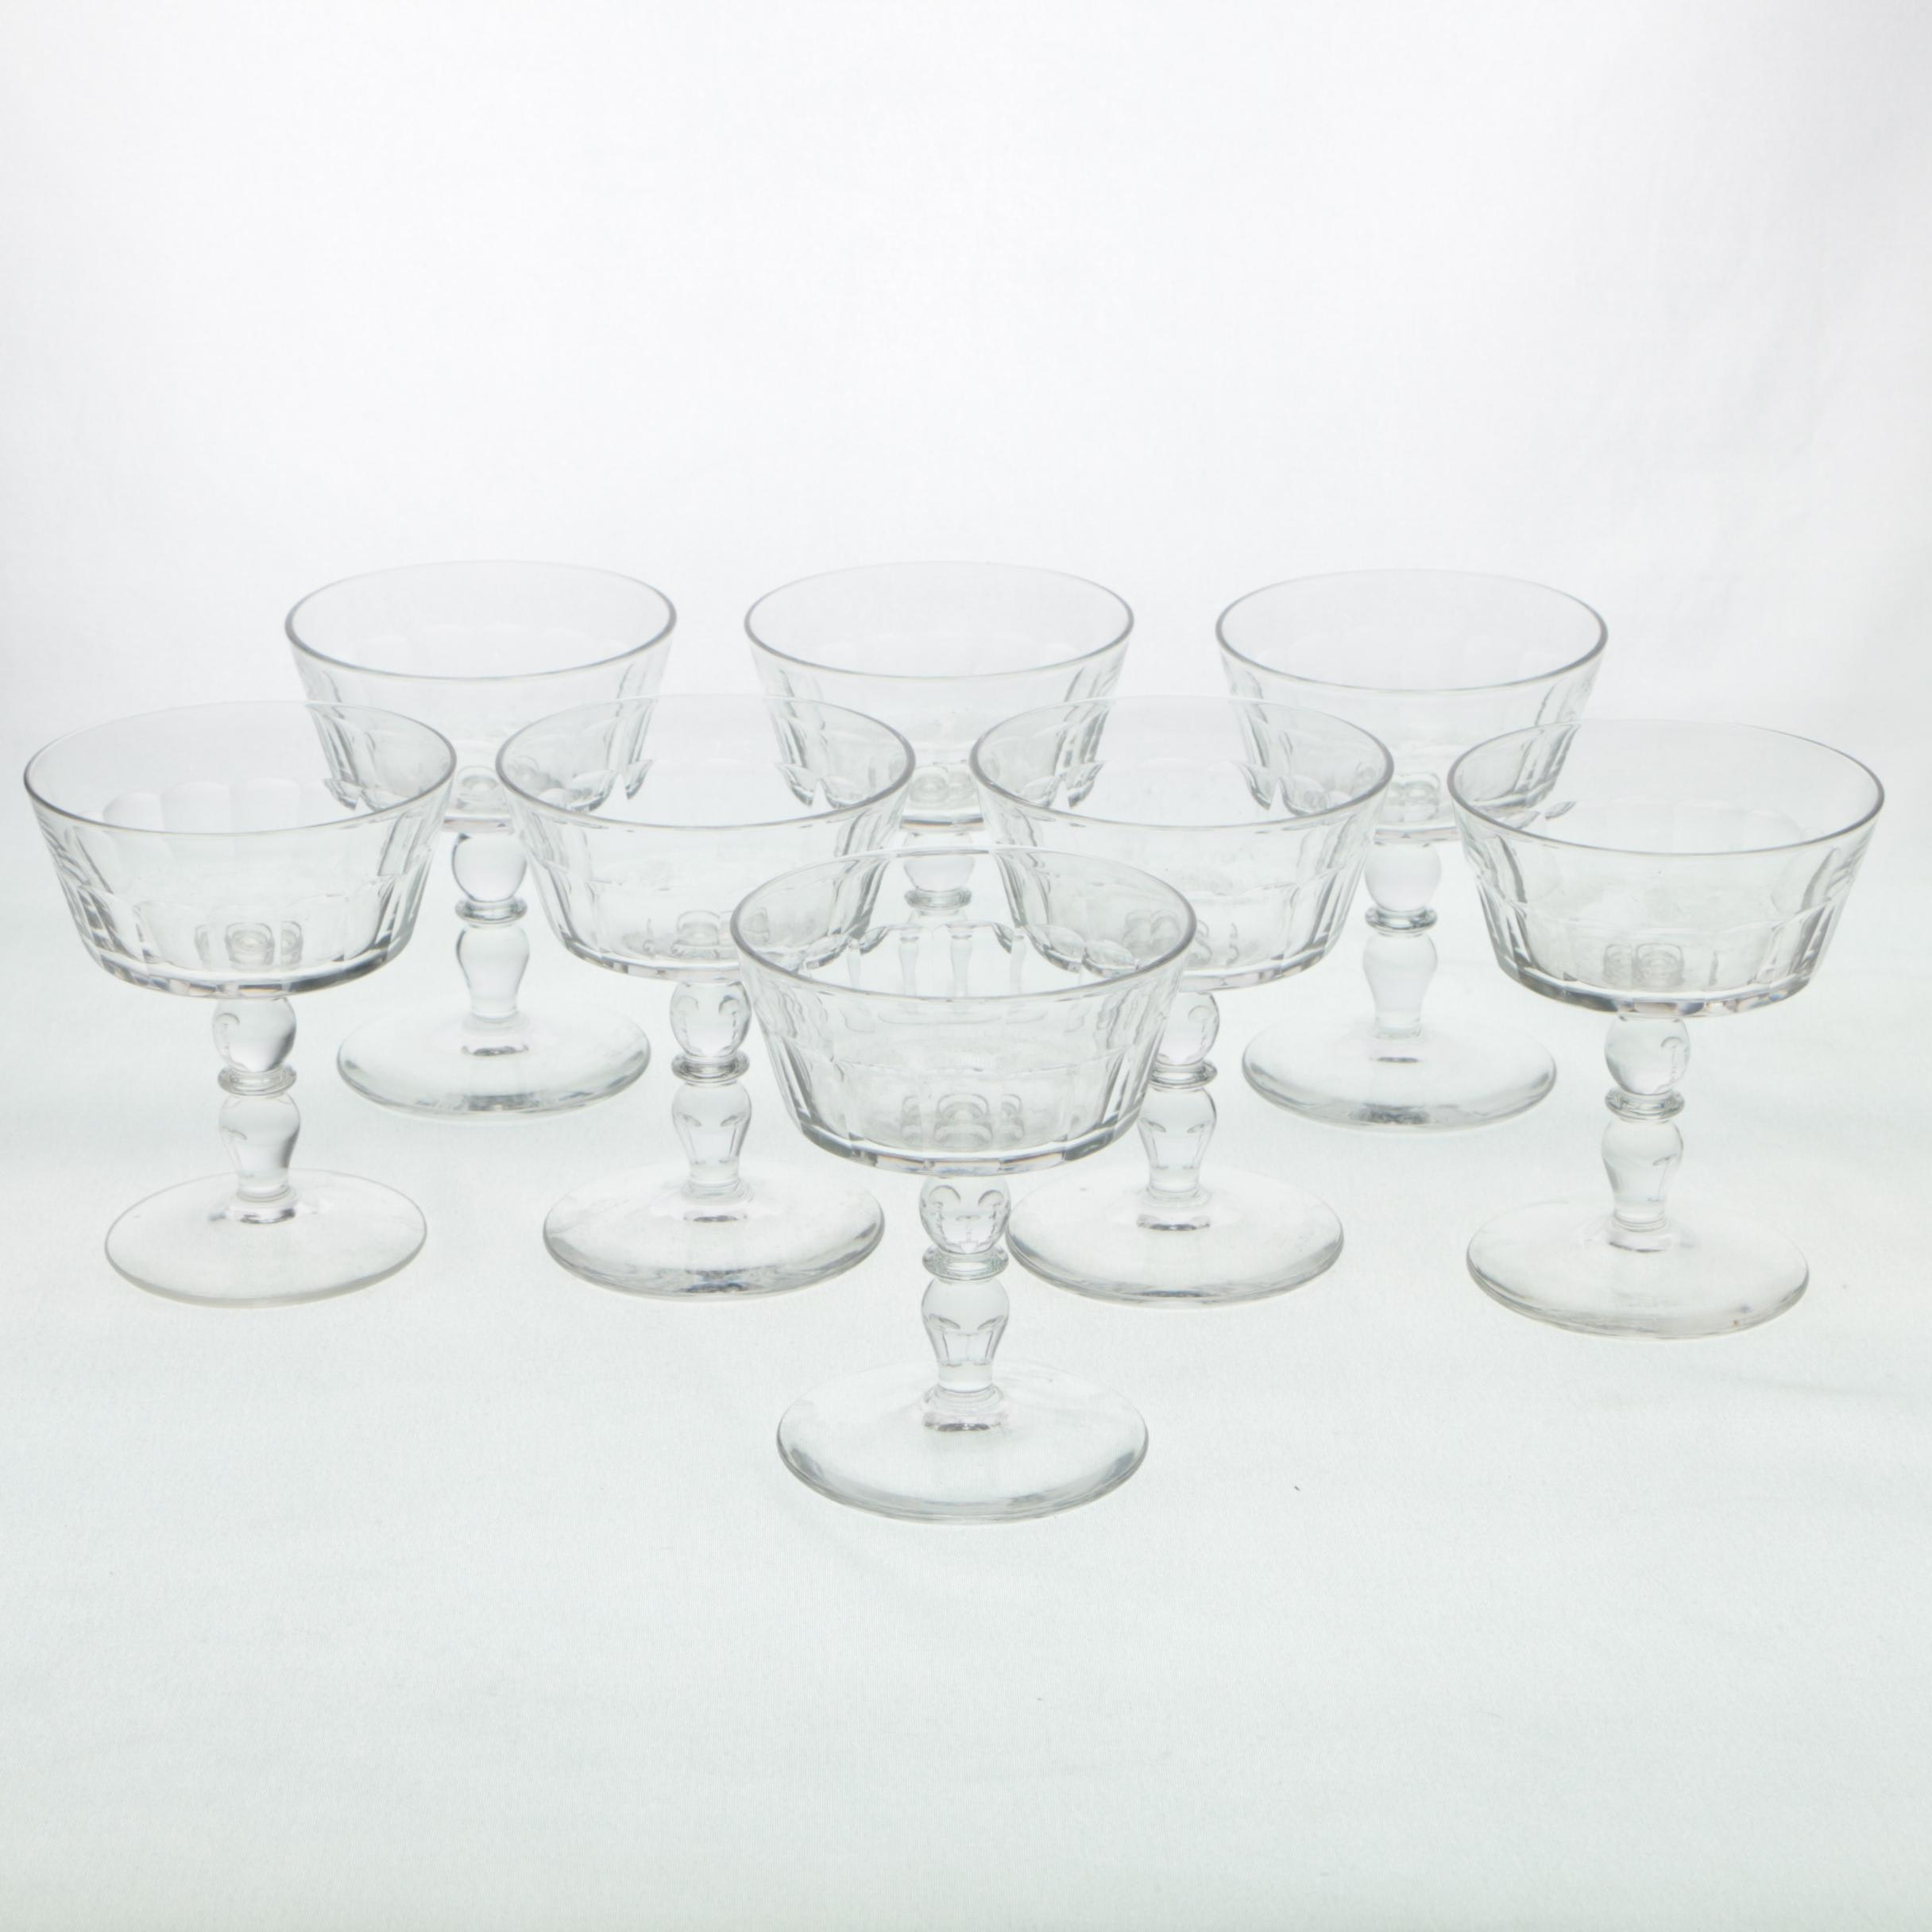 Collection of Cocktail Glasses